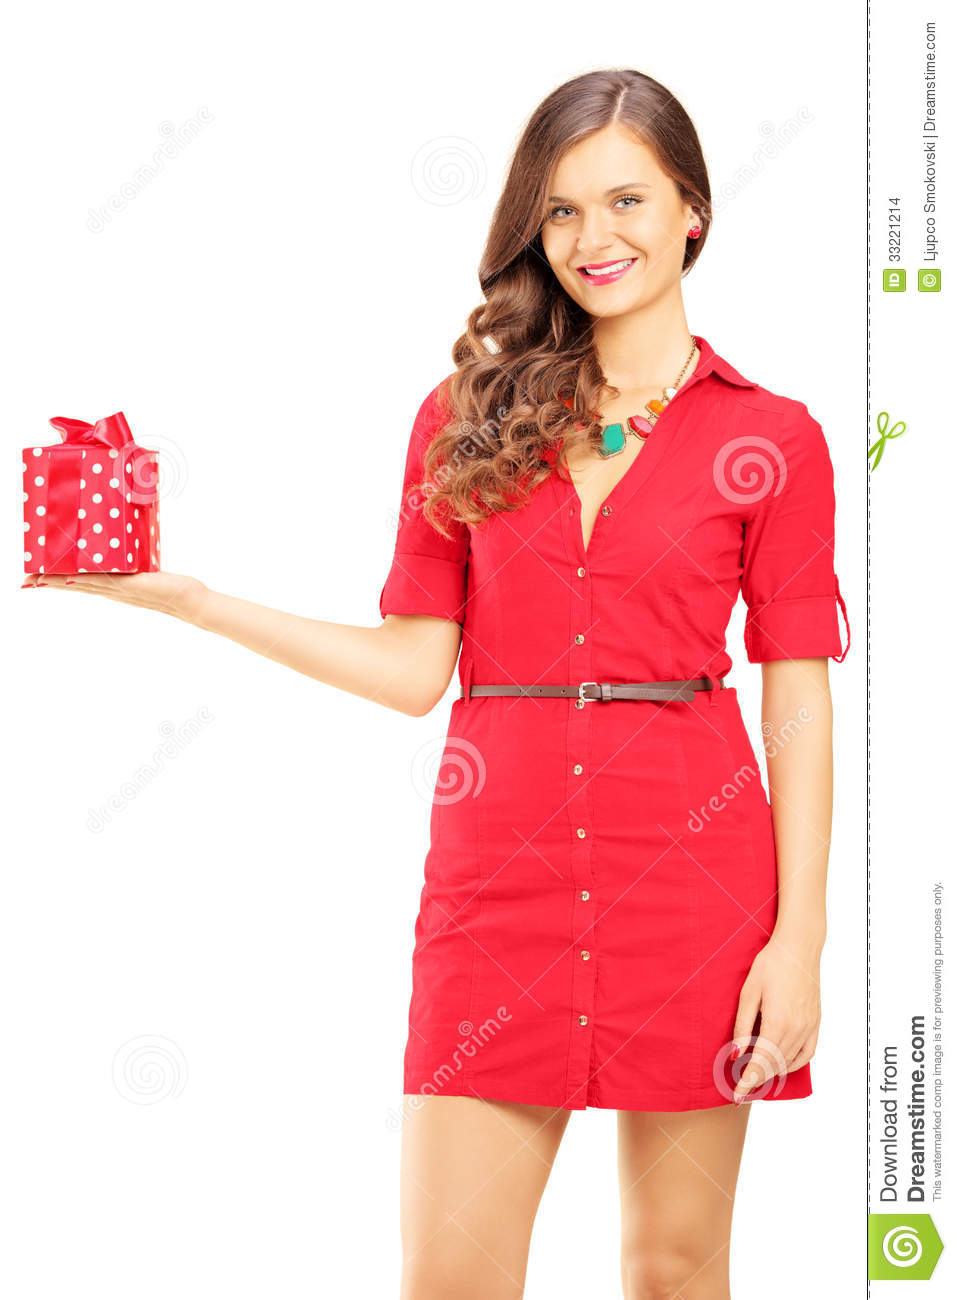 Attractive smiling woman in red dress holding a gift box stock images